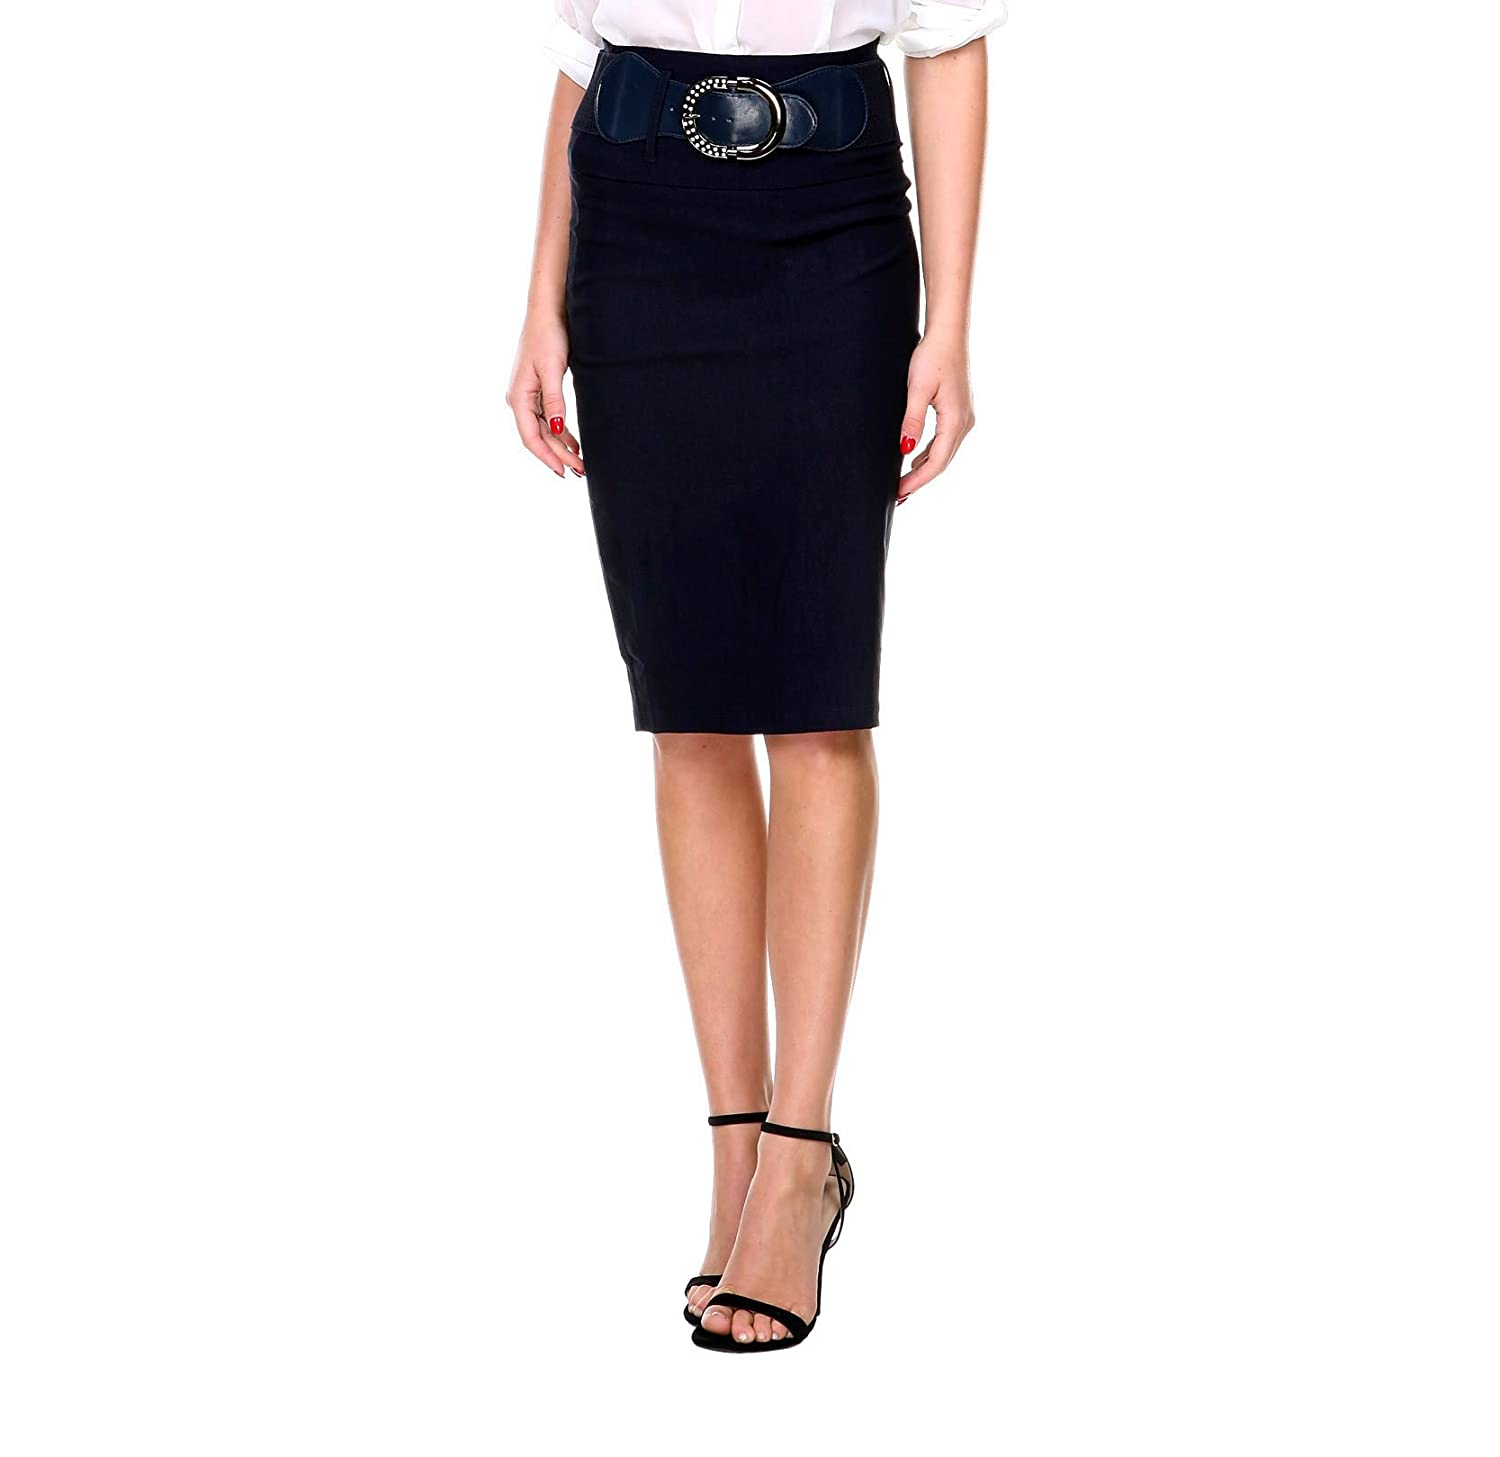 16fe9dda2 on sale Stanzino Women's High Waisted Belted Knee Length Pencil Skirt